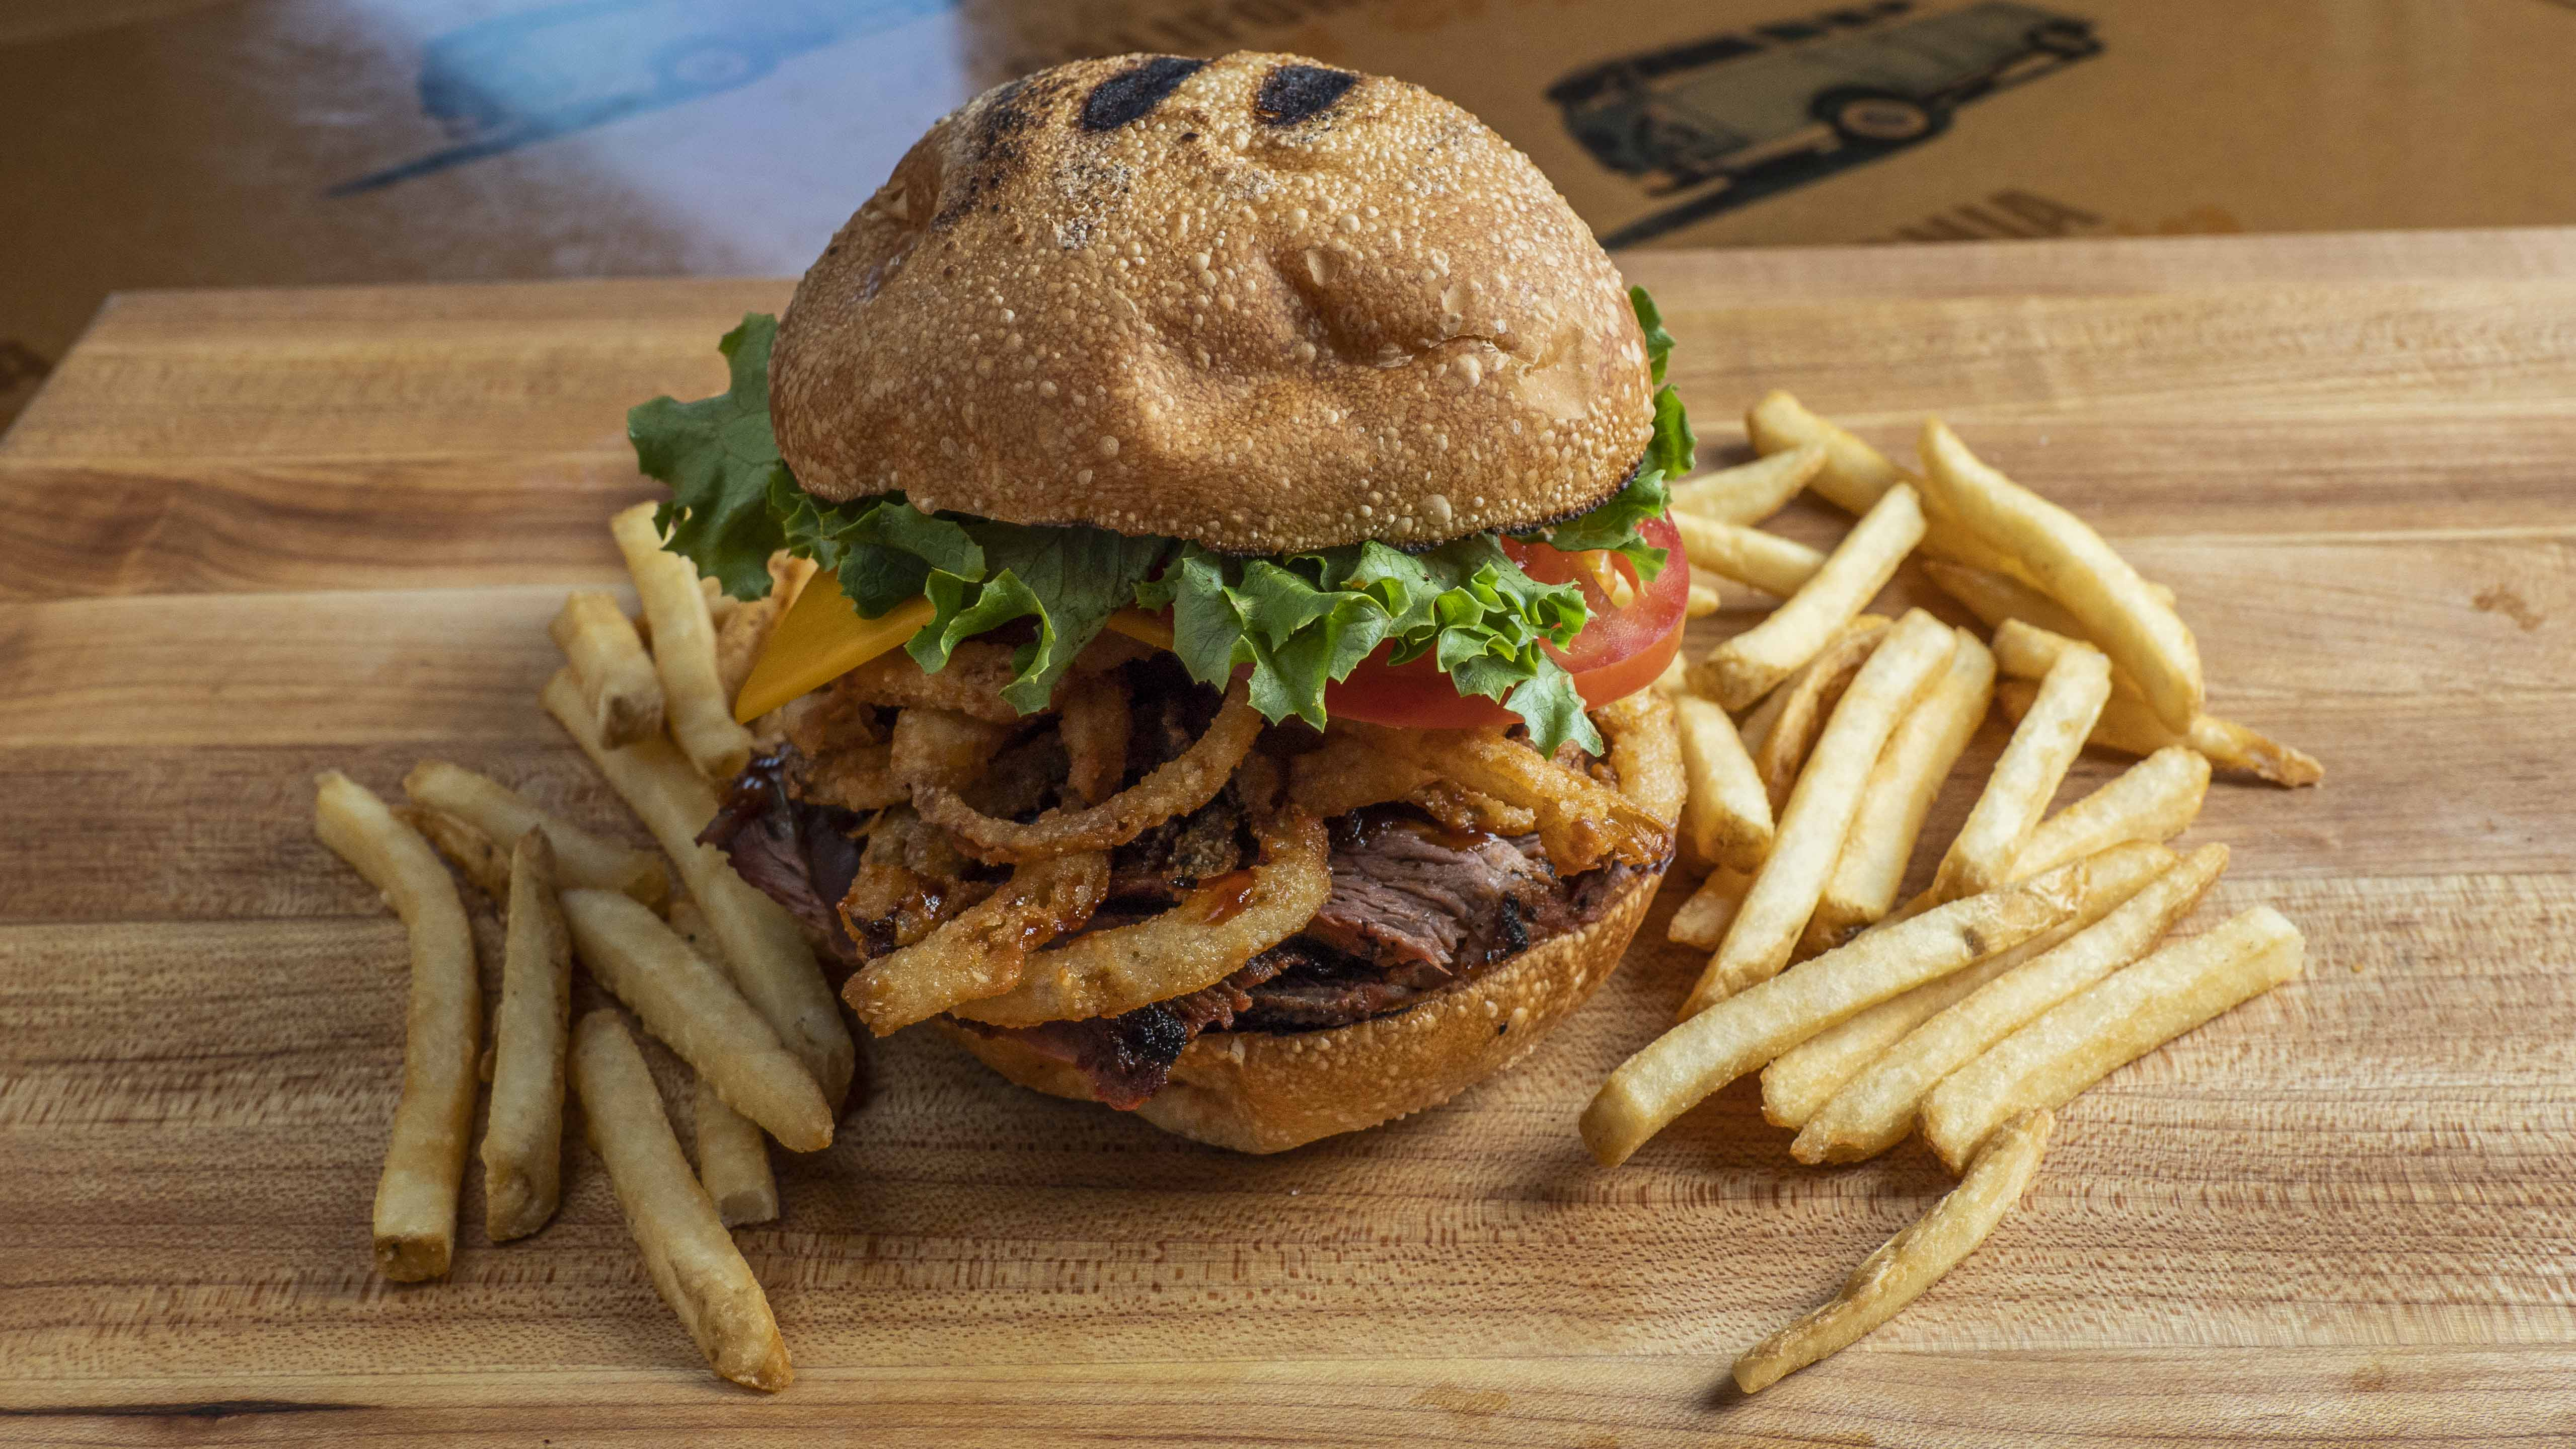 BBQ TRI-TIP* OR BBQ CHICKEN SANDWICH